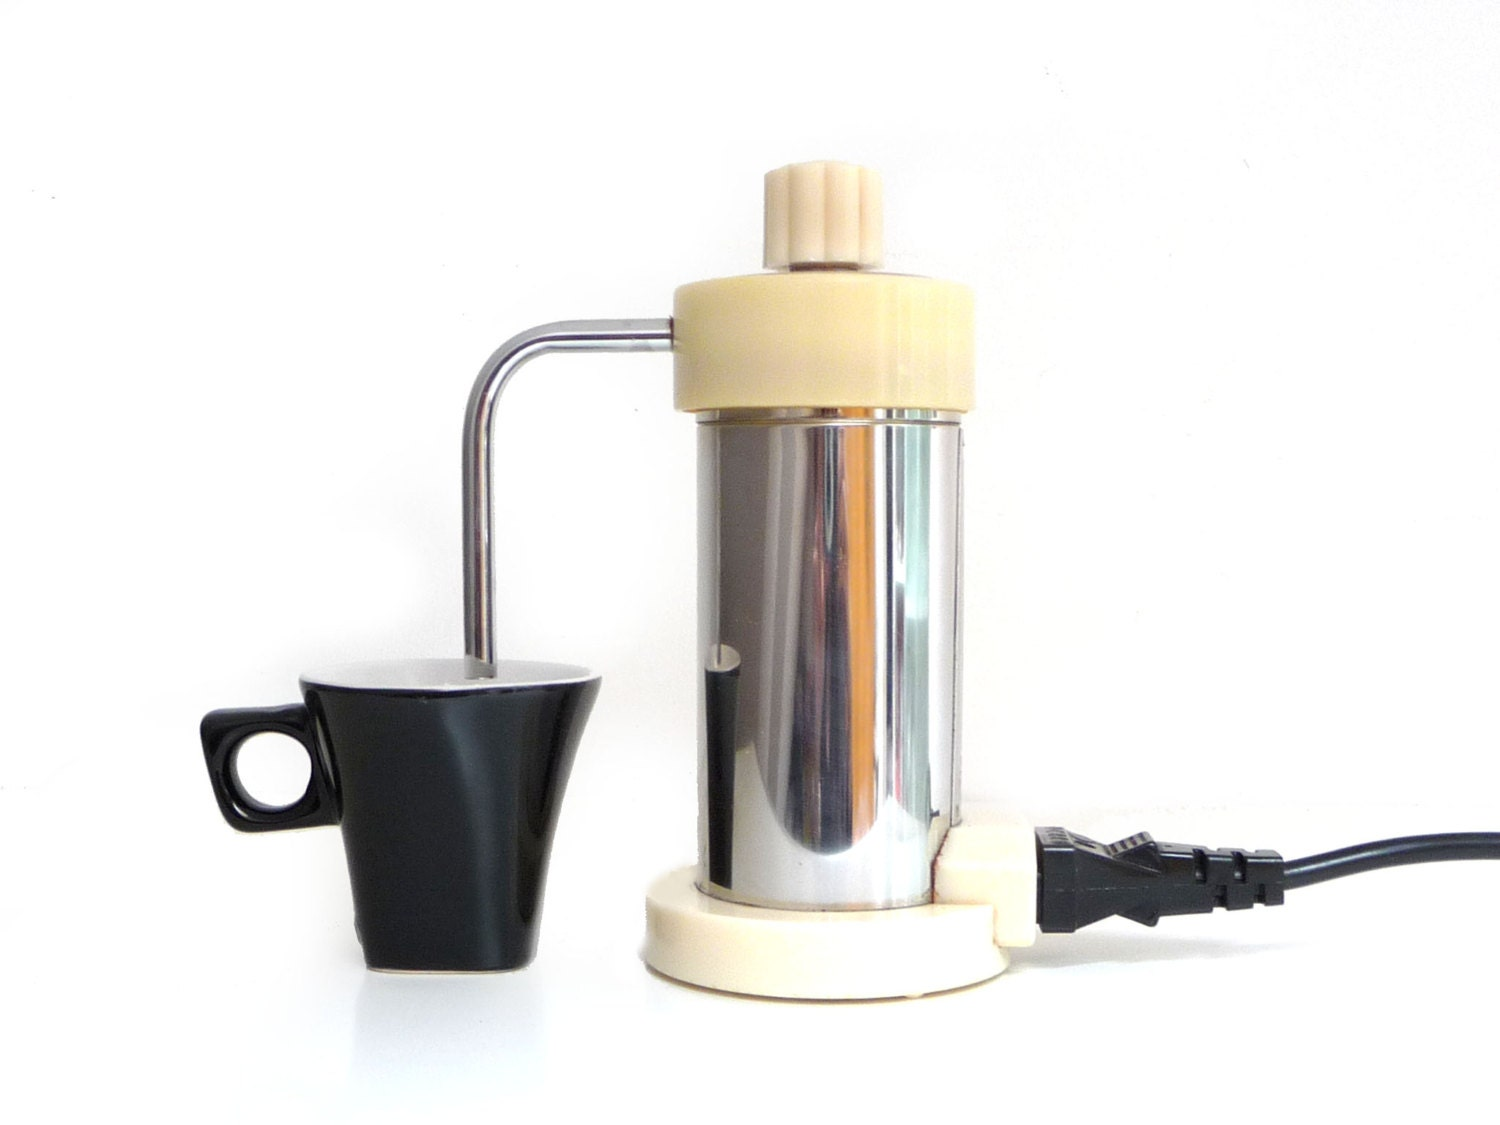 Italian Coffee Maker Percolator : Vintage Electric Espresso Coffee Maker Percolator Italian